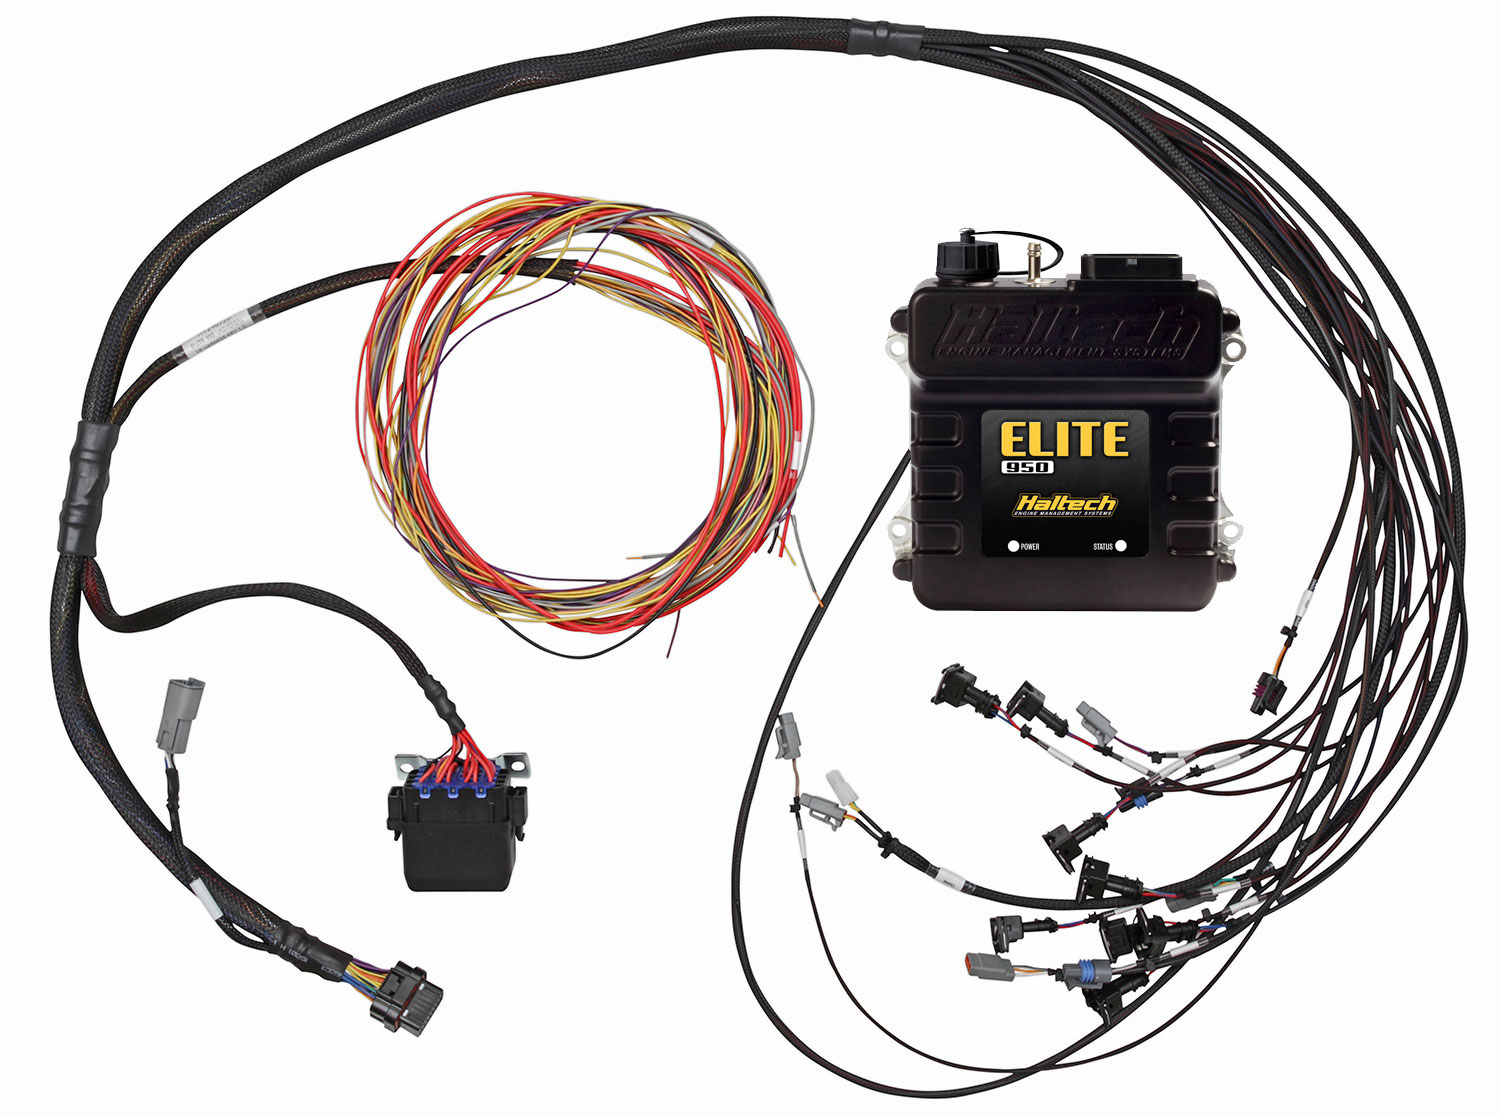 Haltech Engine Management Systems Hemi Archives Dodge 5 7 Wiring Harnesses Elite 950 Ecu Ls2 3 Terminated Harness Kit